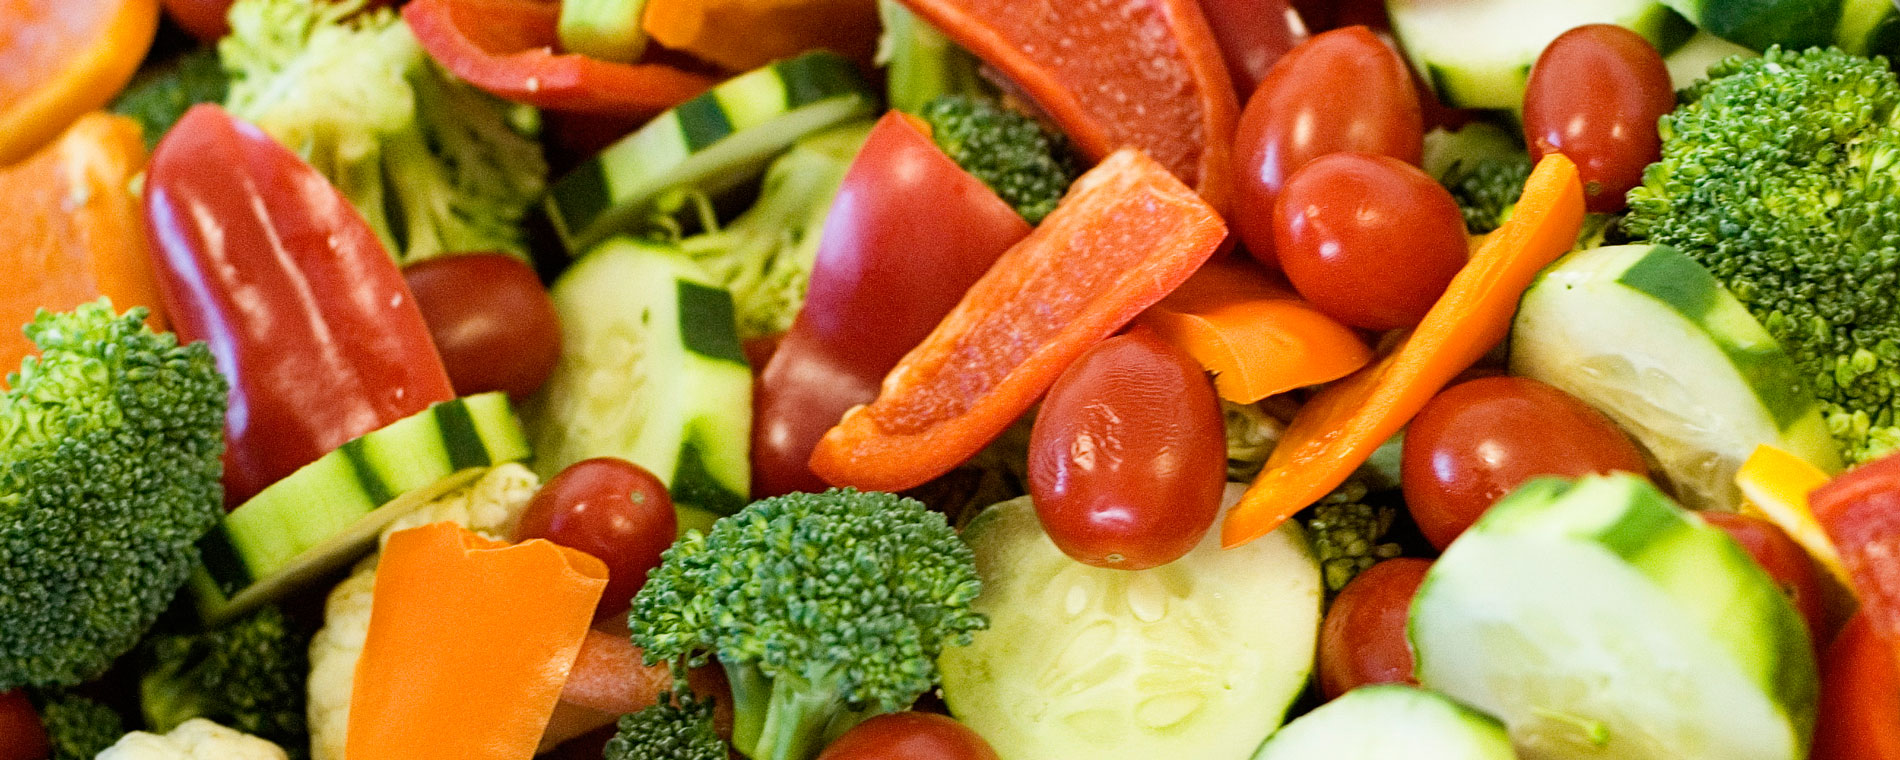 A New Study Says We Should Bribe Children To Eat Their Vegetables